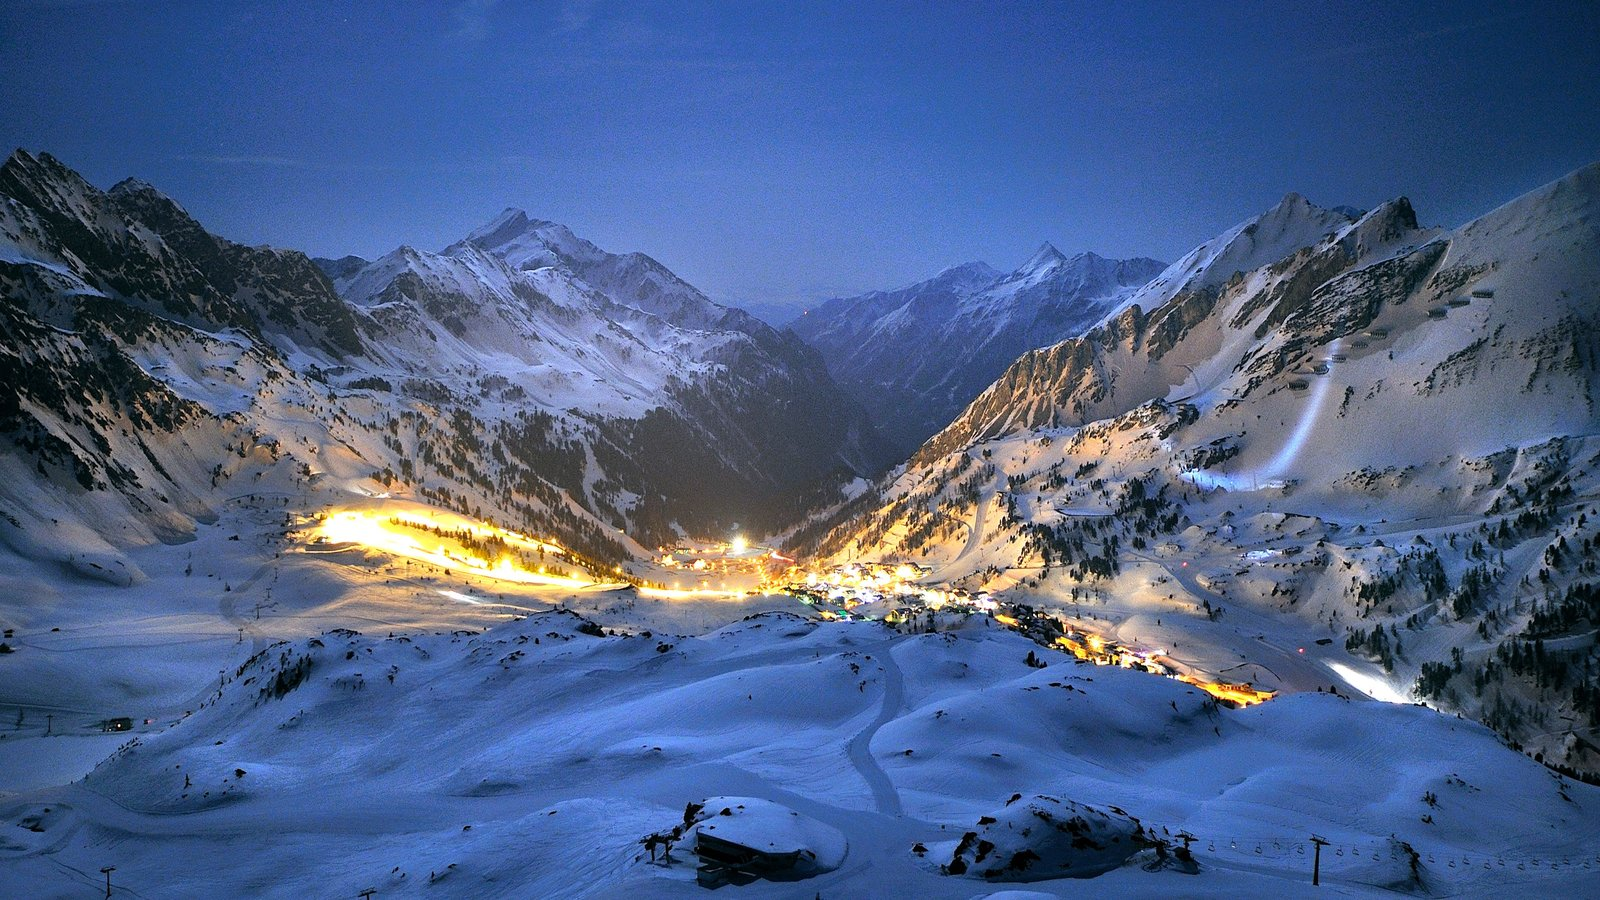 Obertauern which includes mountains, a small town or village and night scenes